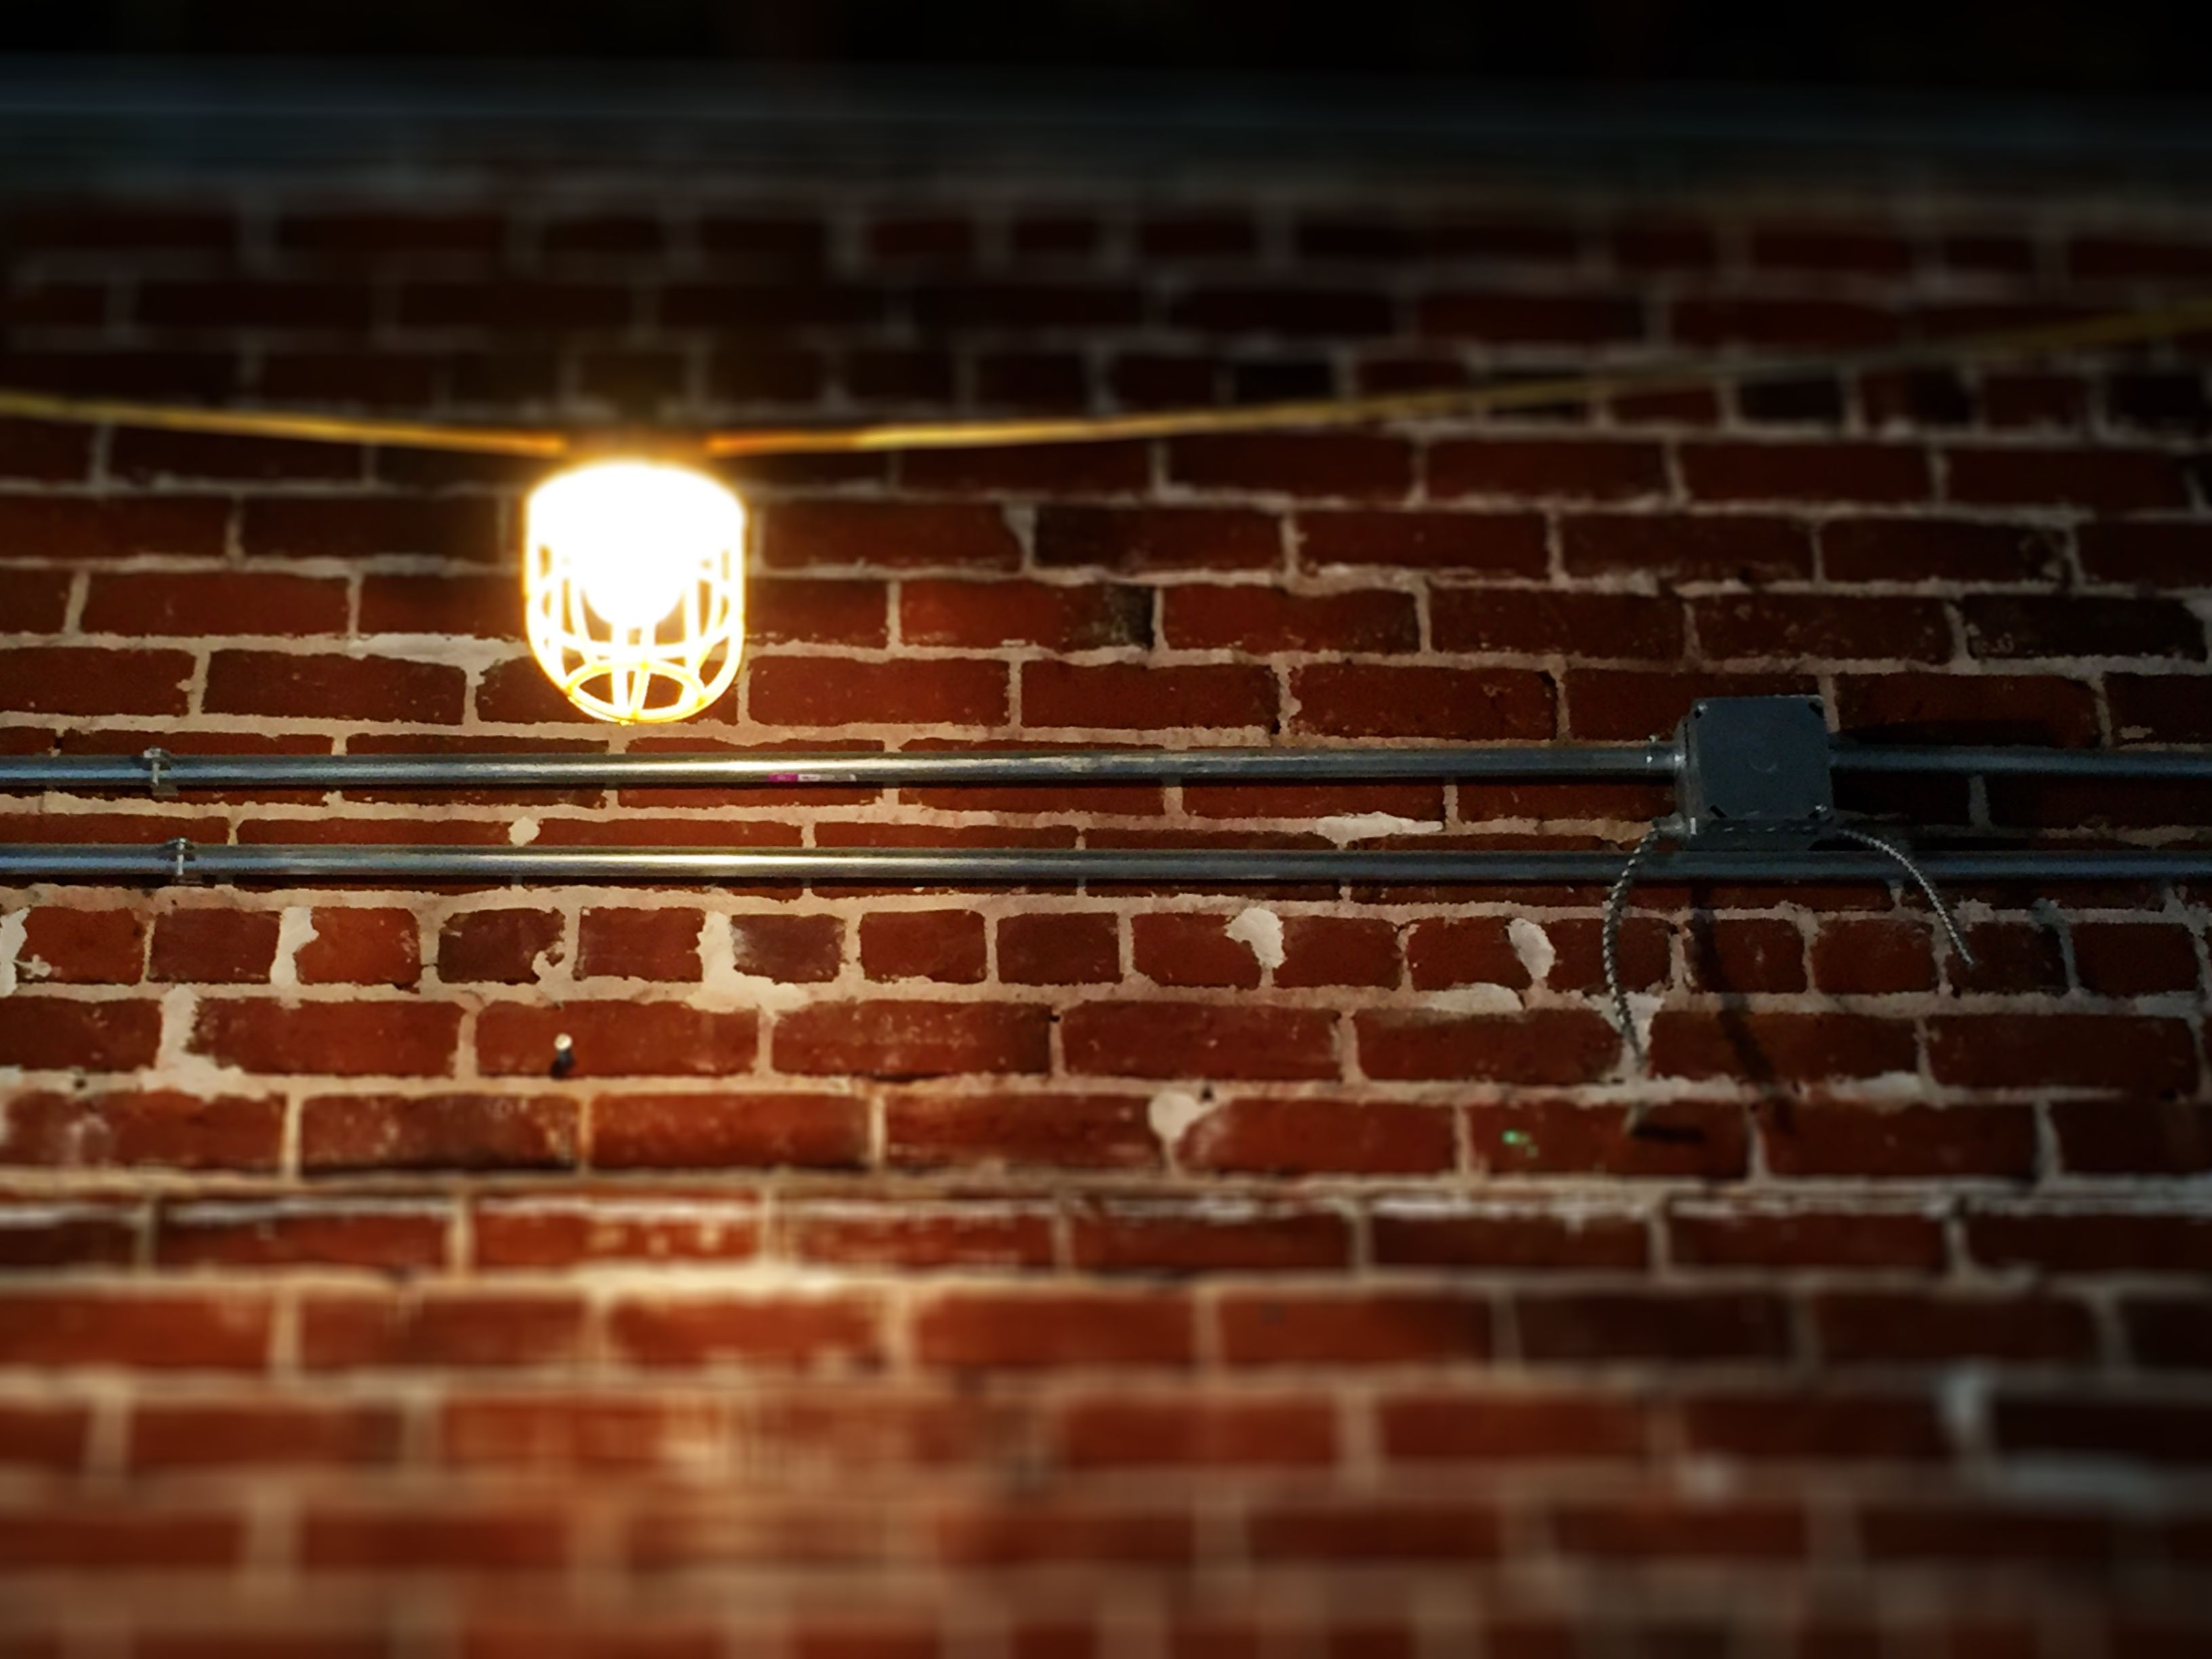 Pretty little work light shines brightly against the #brick at The #Bar. @Morgans_On_Main #construction #visitwoodland #visityolo